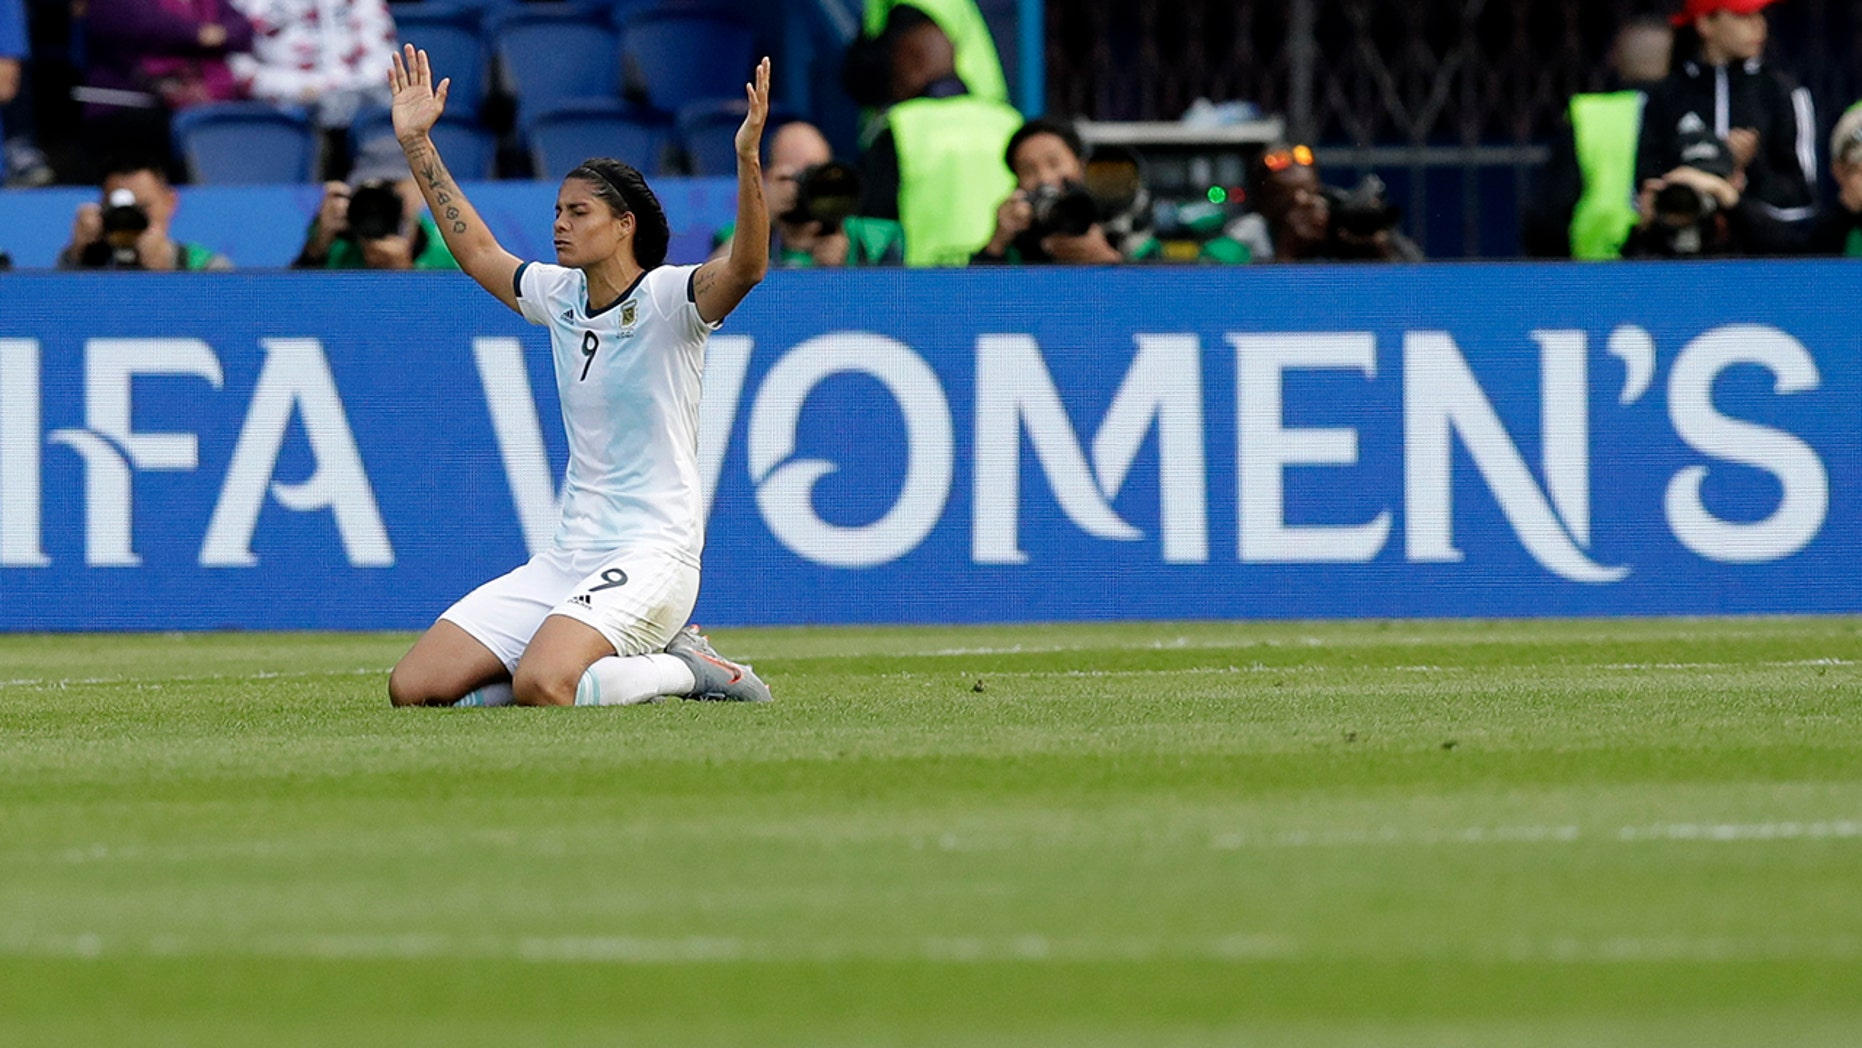 Argentina's Sole Jaimes gestures at the end of the Women's World Cup Group D soccer match between Argentina and Japan at the Parc des Princes in Paris, Monday, June 10, 2019. The match ended in a 0-0 draw. (AP Photo/Alessandra Tarantino)